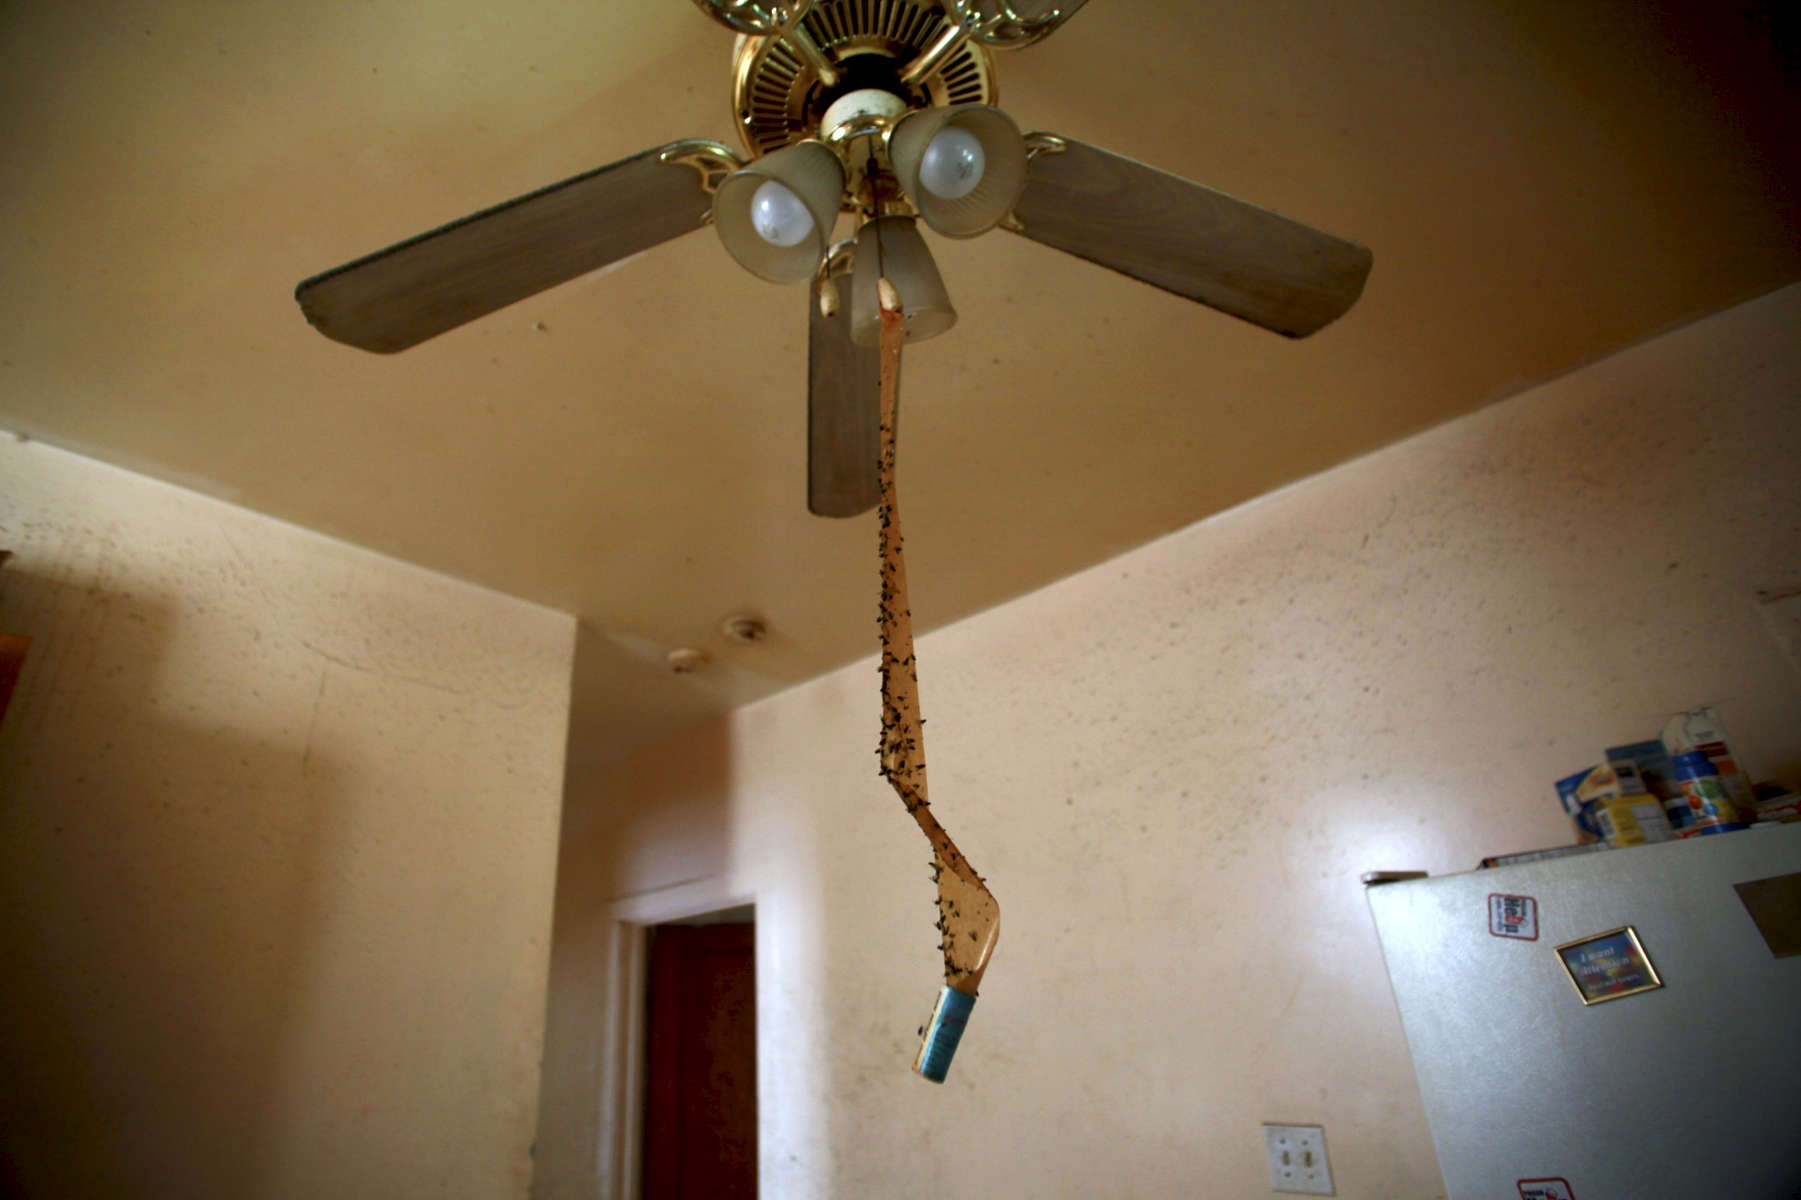 Inside an apartment on Chicago's west side, fly paper hangs from  a ceiling fan and remnants of the past owners still decorate the refrigerator. The building, which is in foreclosure, is owned by US Bank.